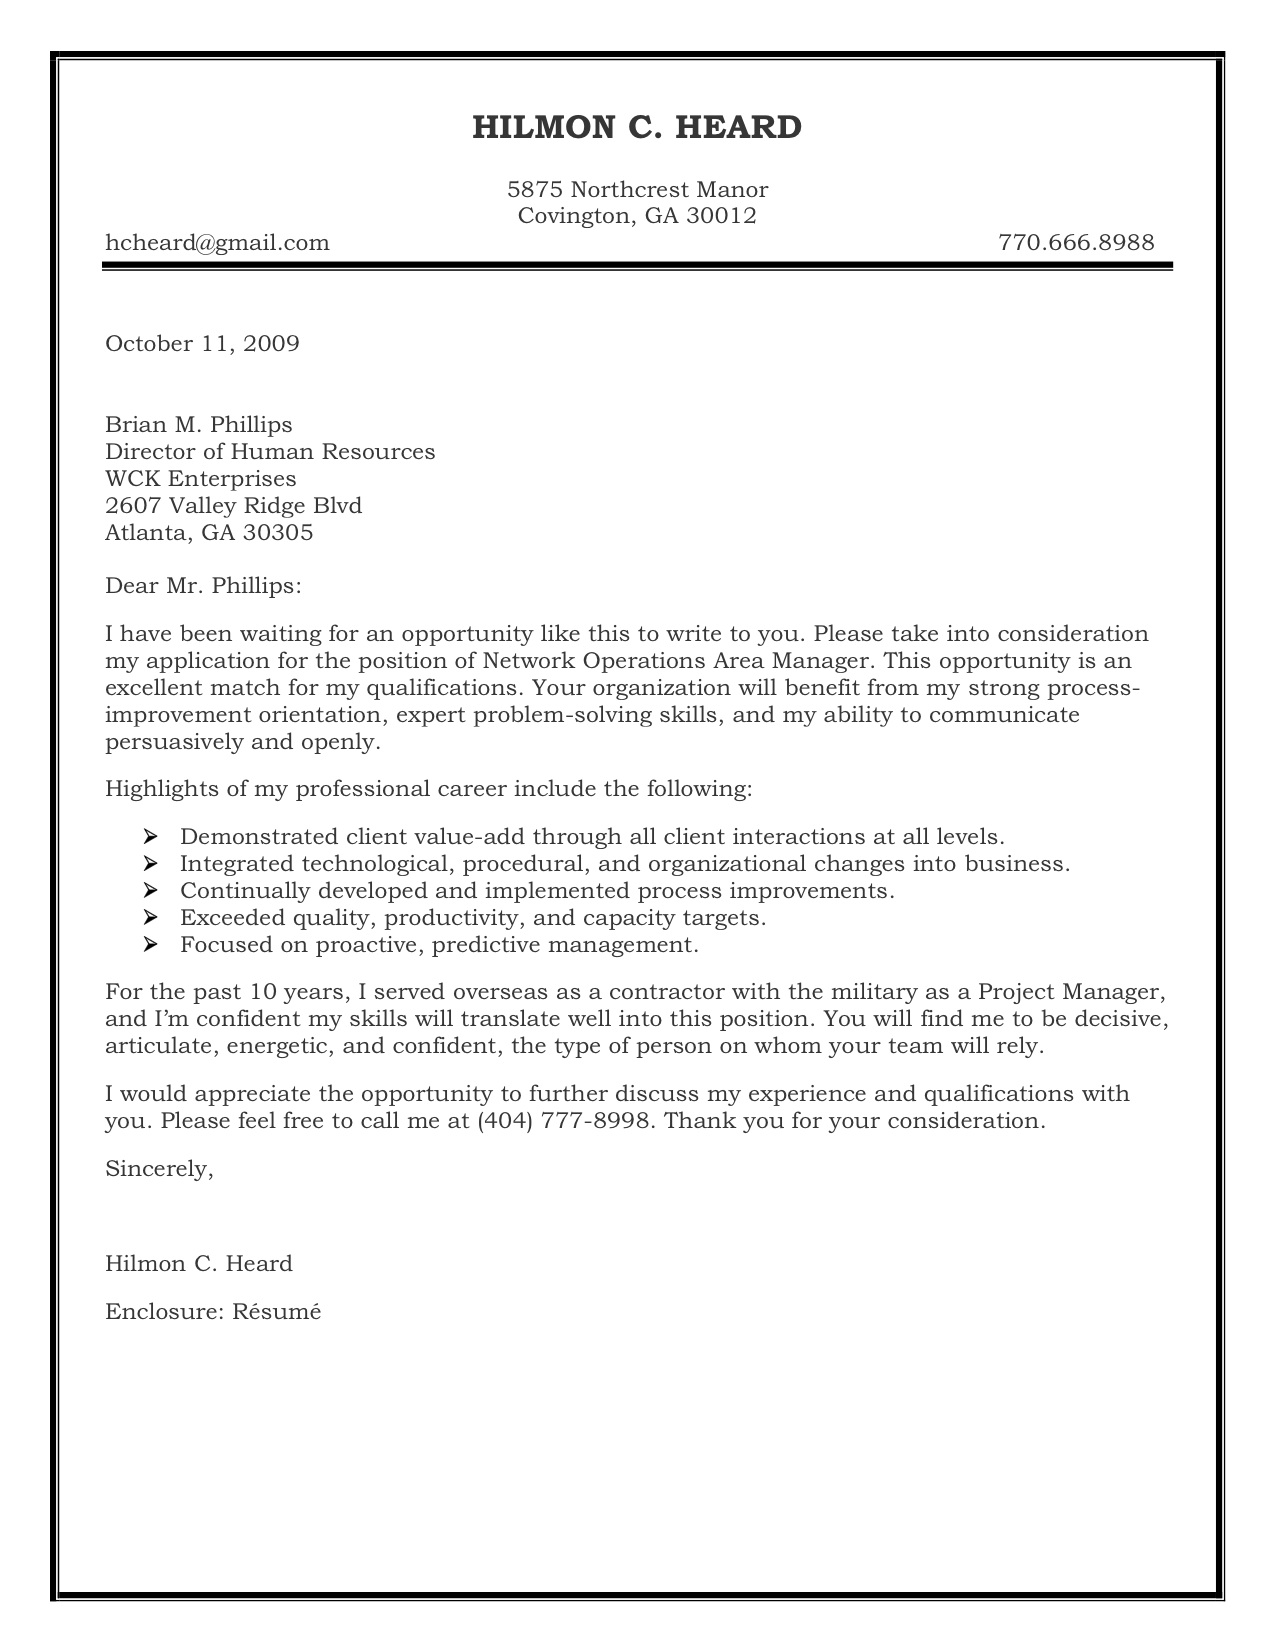 Commercial Advisor Cover Letter Cover Letteres Template Just Another  WordPress Site Teacher Cover Letter Examples Education  Teacher Cover Letter Example